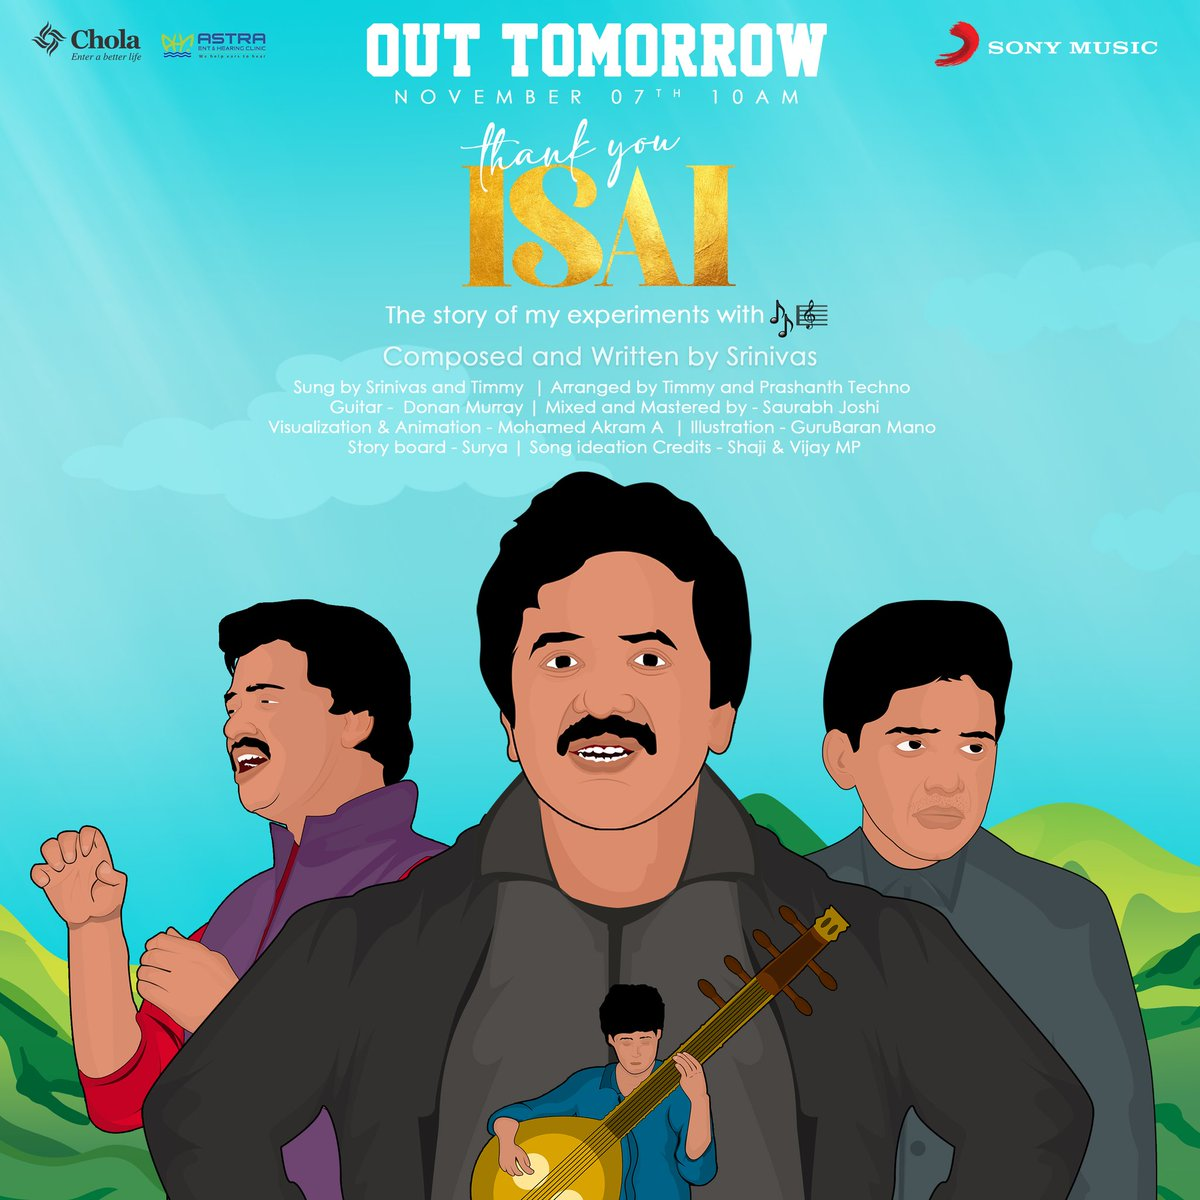 #ThankYouIsai from the desk of @singersrinivas arriving at 10AM tomorrow! ♥️  Stay tuned for this melody! 🥰  @SilverTreeOffl @noiseandgrains